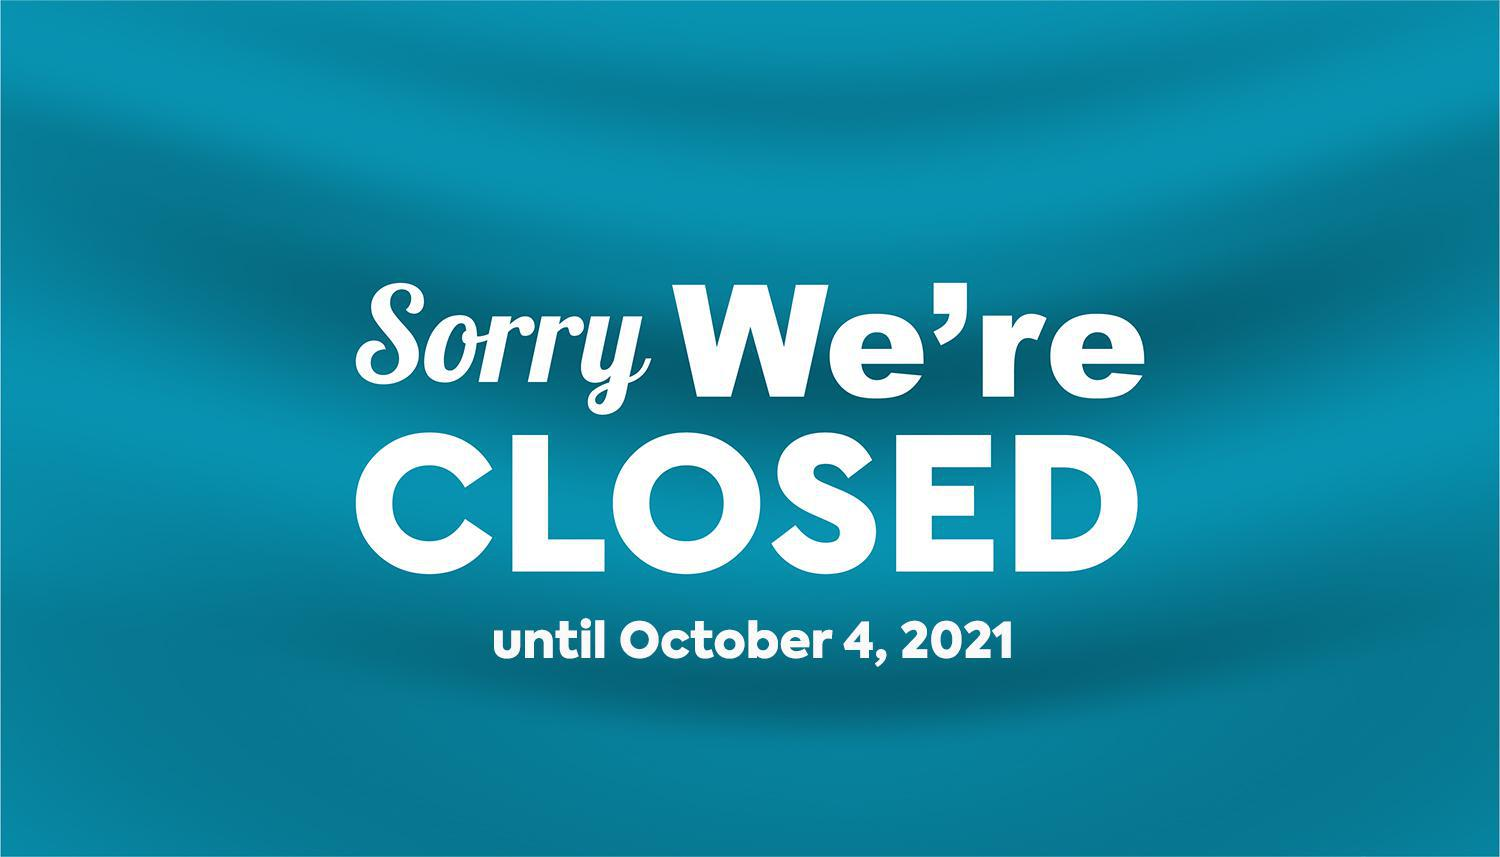 Sorry, we're closed until October 4, 2021.